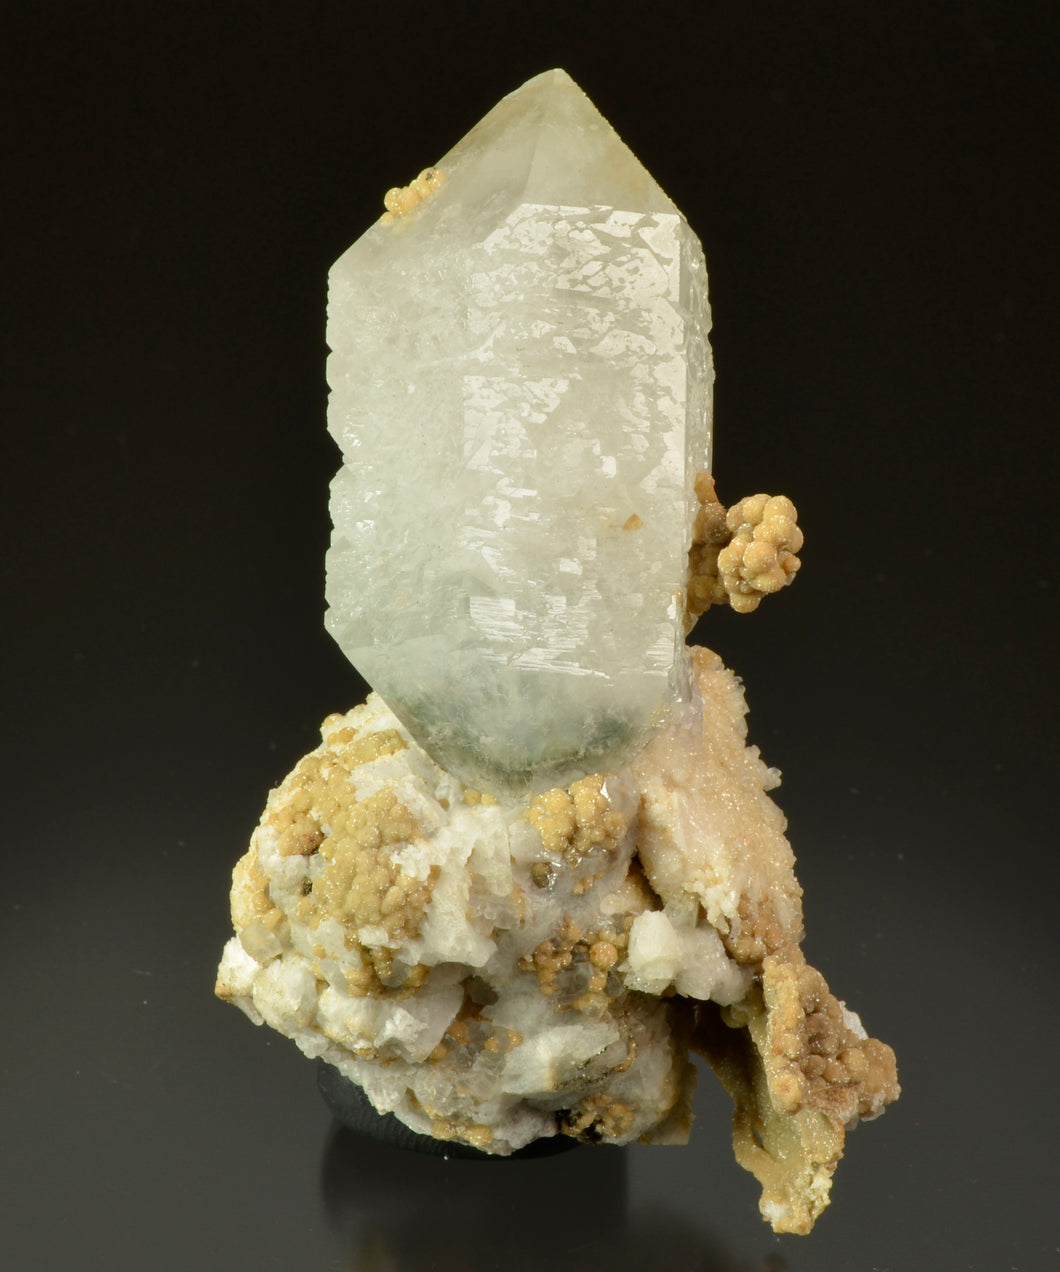 Quartz from Santa Eulalia, Chihuahua, Mexico